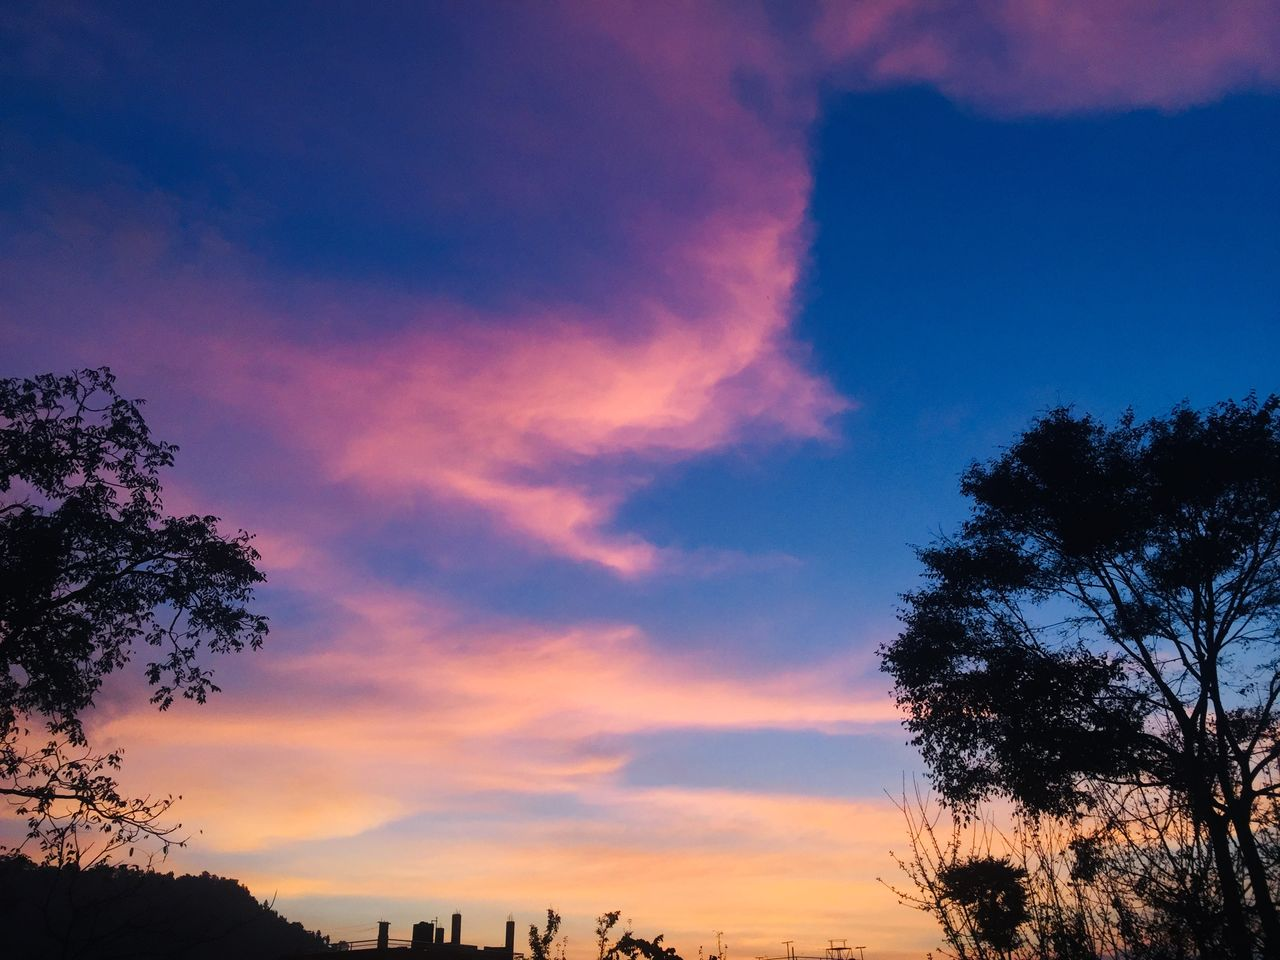 sky, sunset, cloud - sky, tree, plant, beauty in nature, scenics - nature, silhouette, nature, tranquility, tranquil scene, no people, orange color, low angle view, outdoors, idyllic, growth, dramatic sky, dusk, architecture, romantic sky